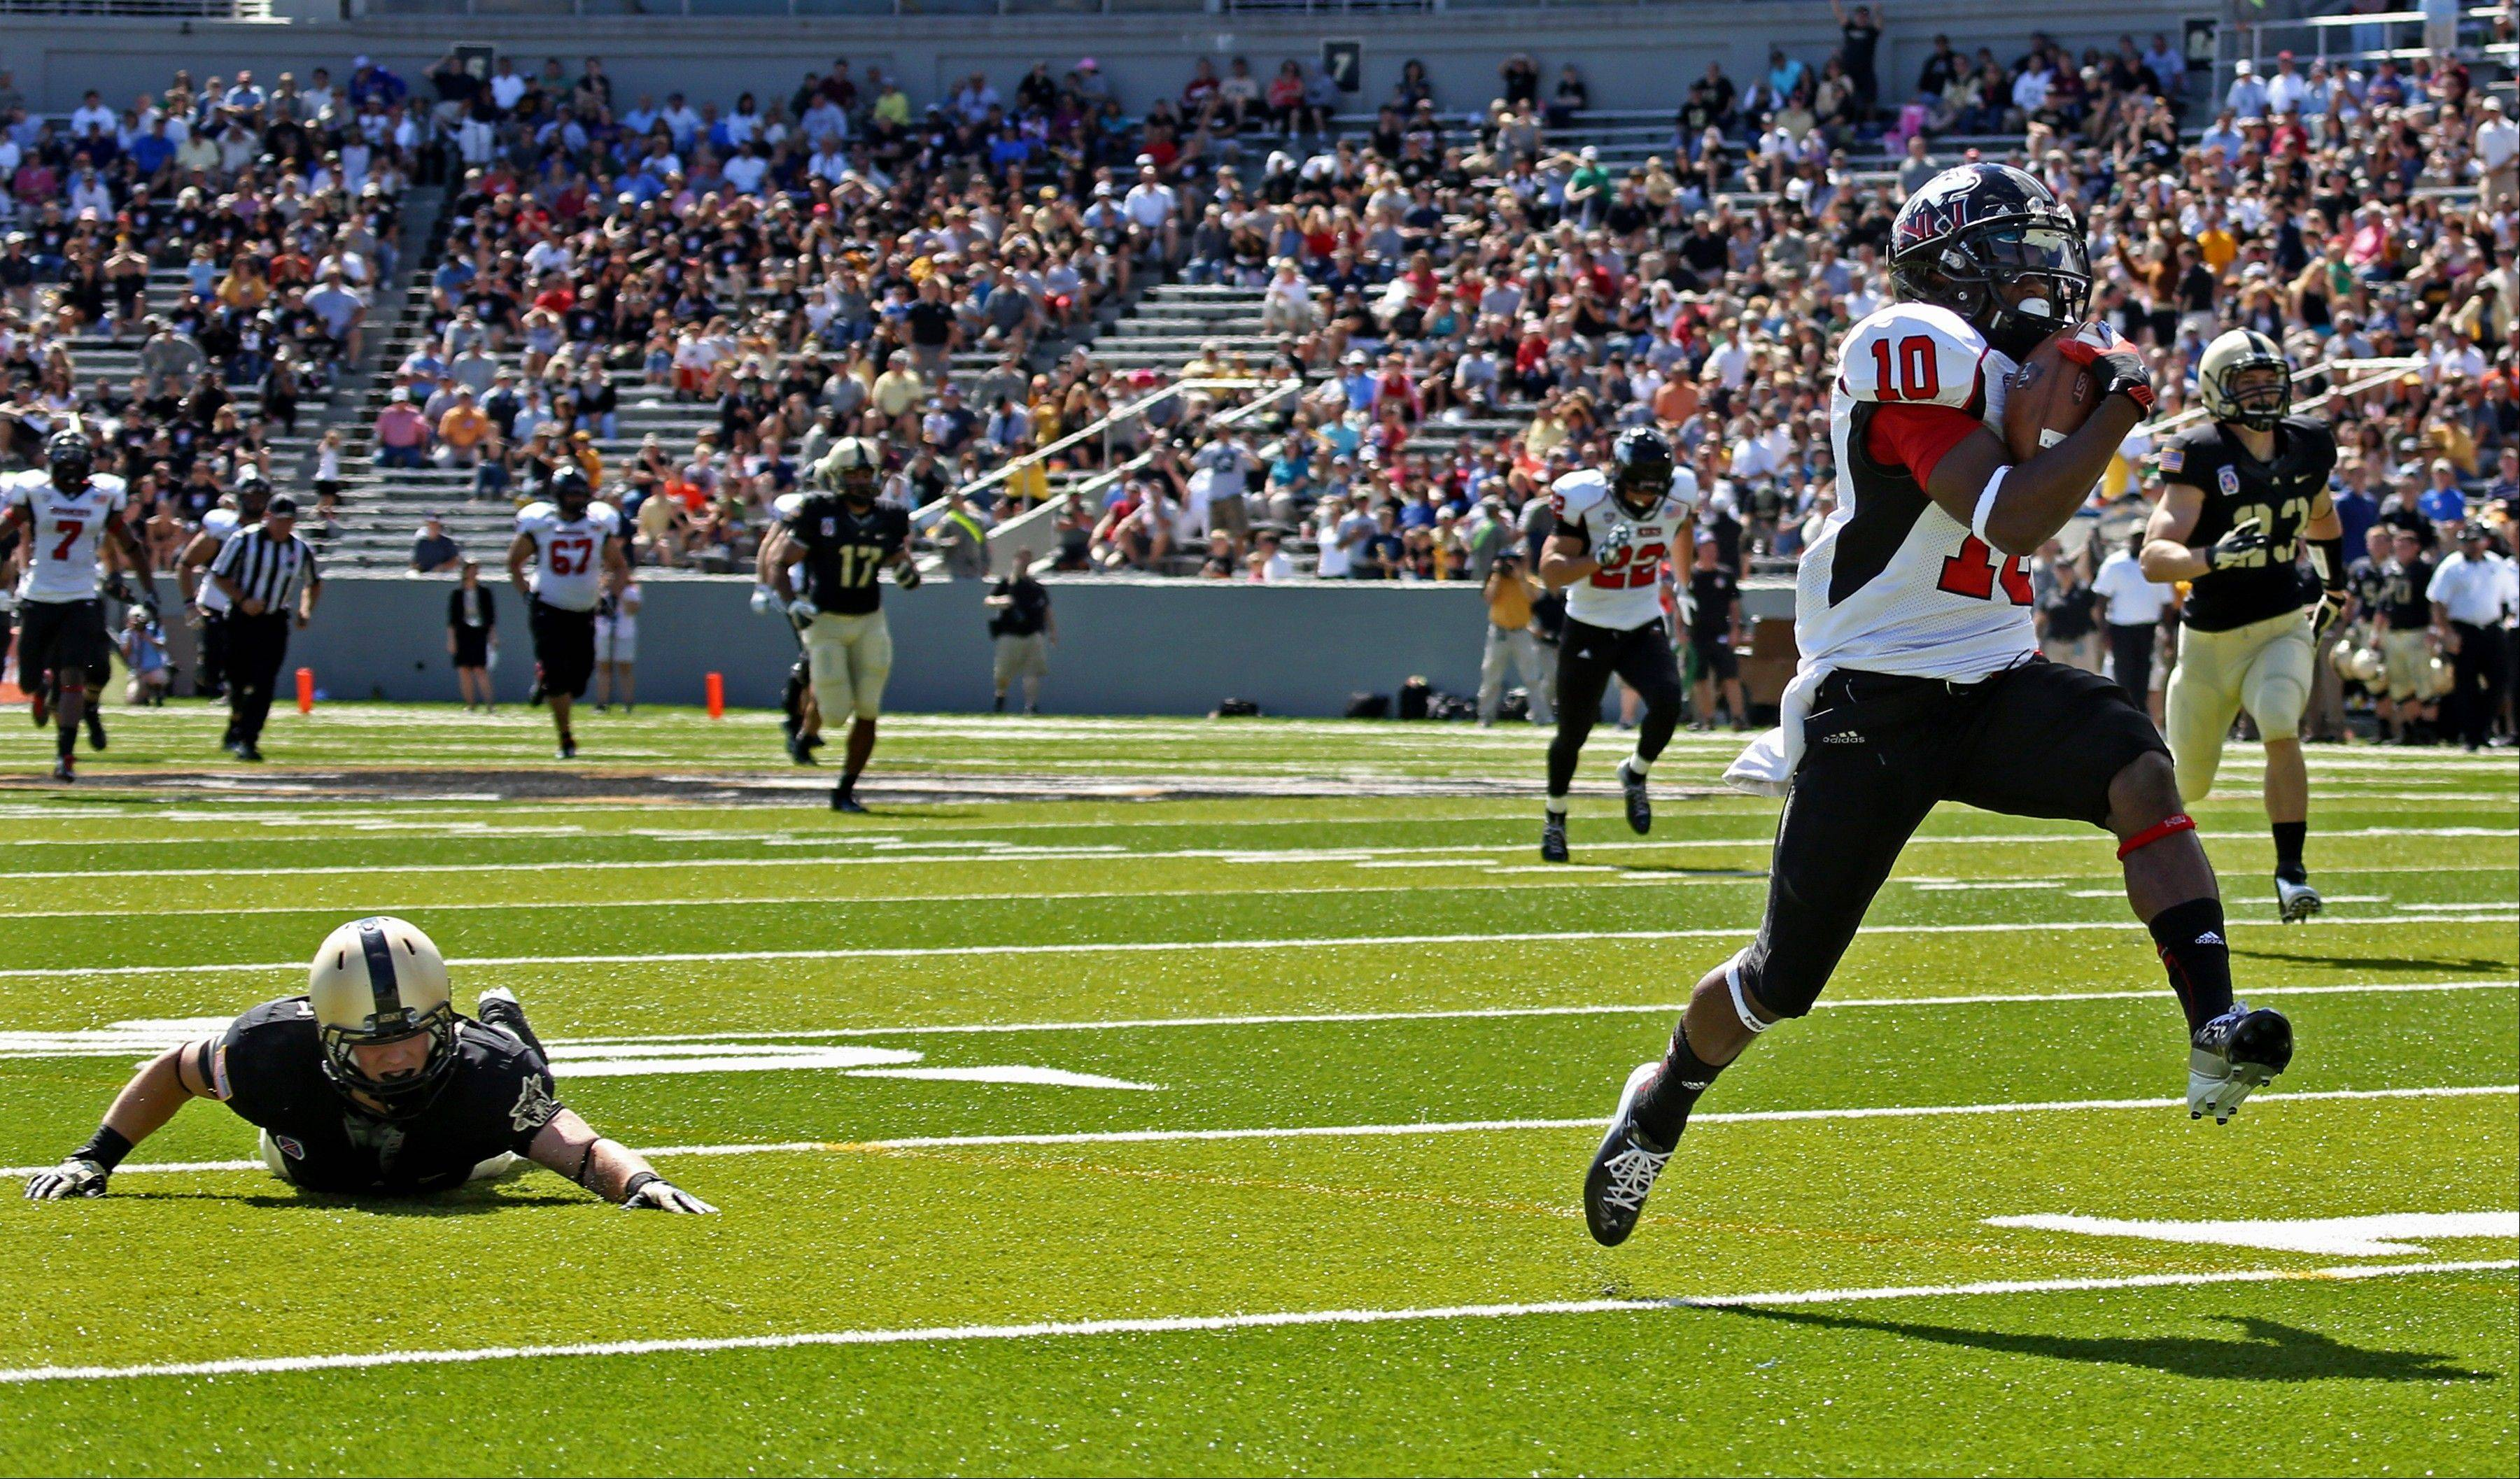 Northern Illinois' Tommylee Lewis runs for a touchdown past Army's Justin Trimble Saturday during the first half in West Point, N.Y.